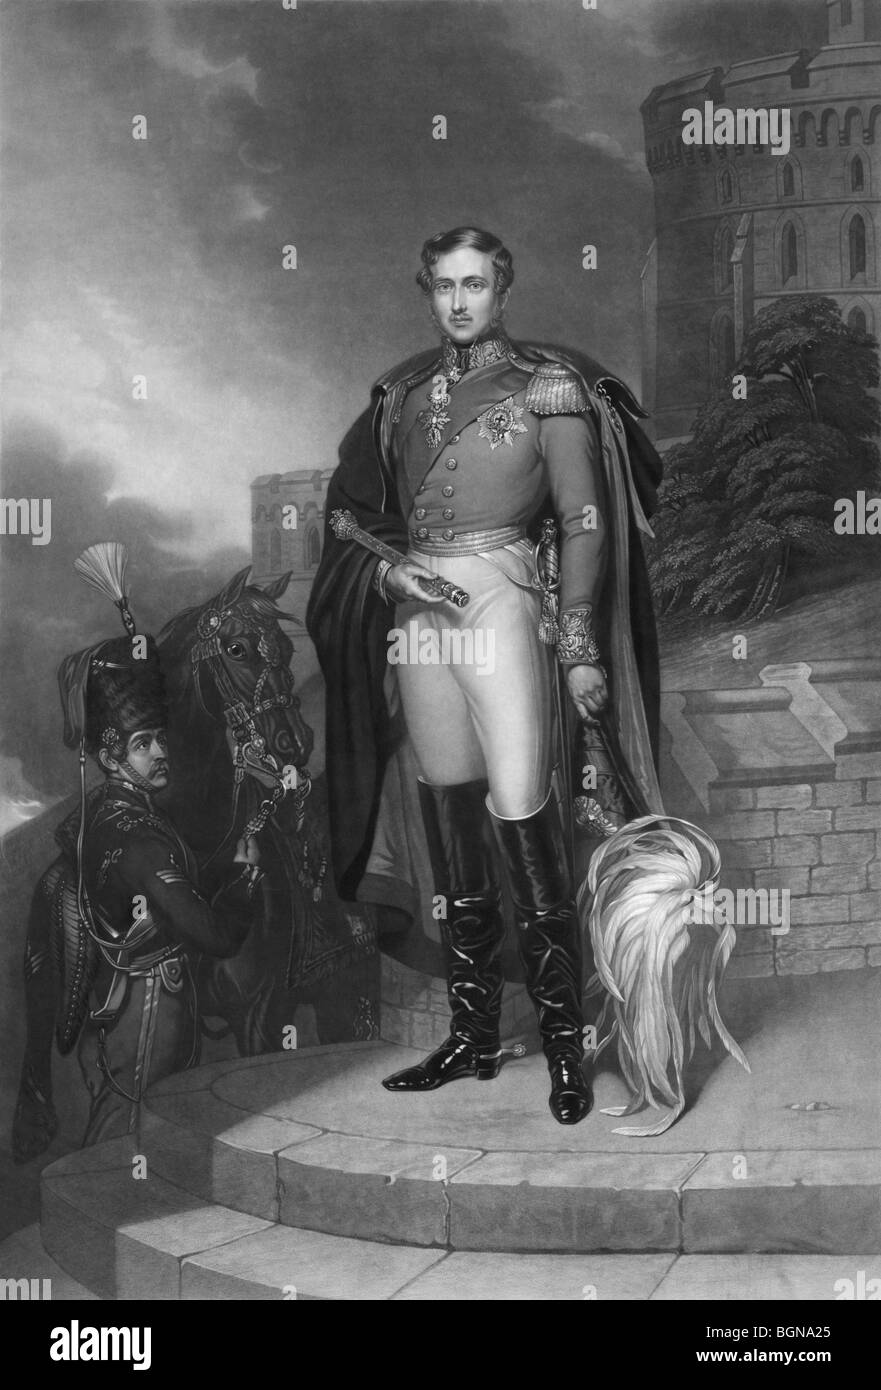 Portrait engraving print c1847 of Prince Albert of Saxe-Coburg and Gotha (1819 - 1861), husband of Queen Victoria. - Stock Image